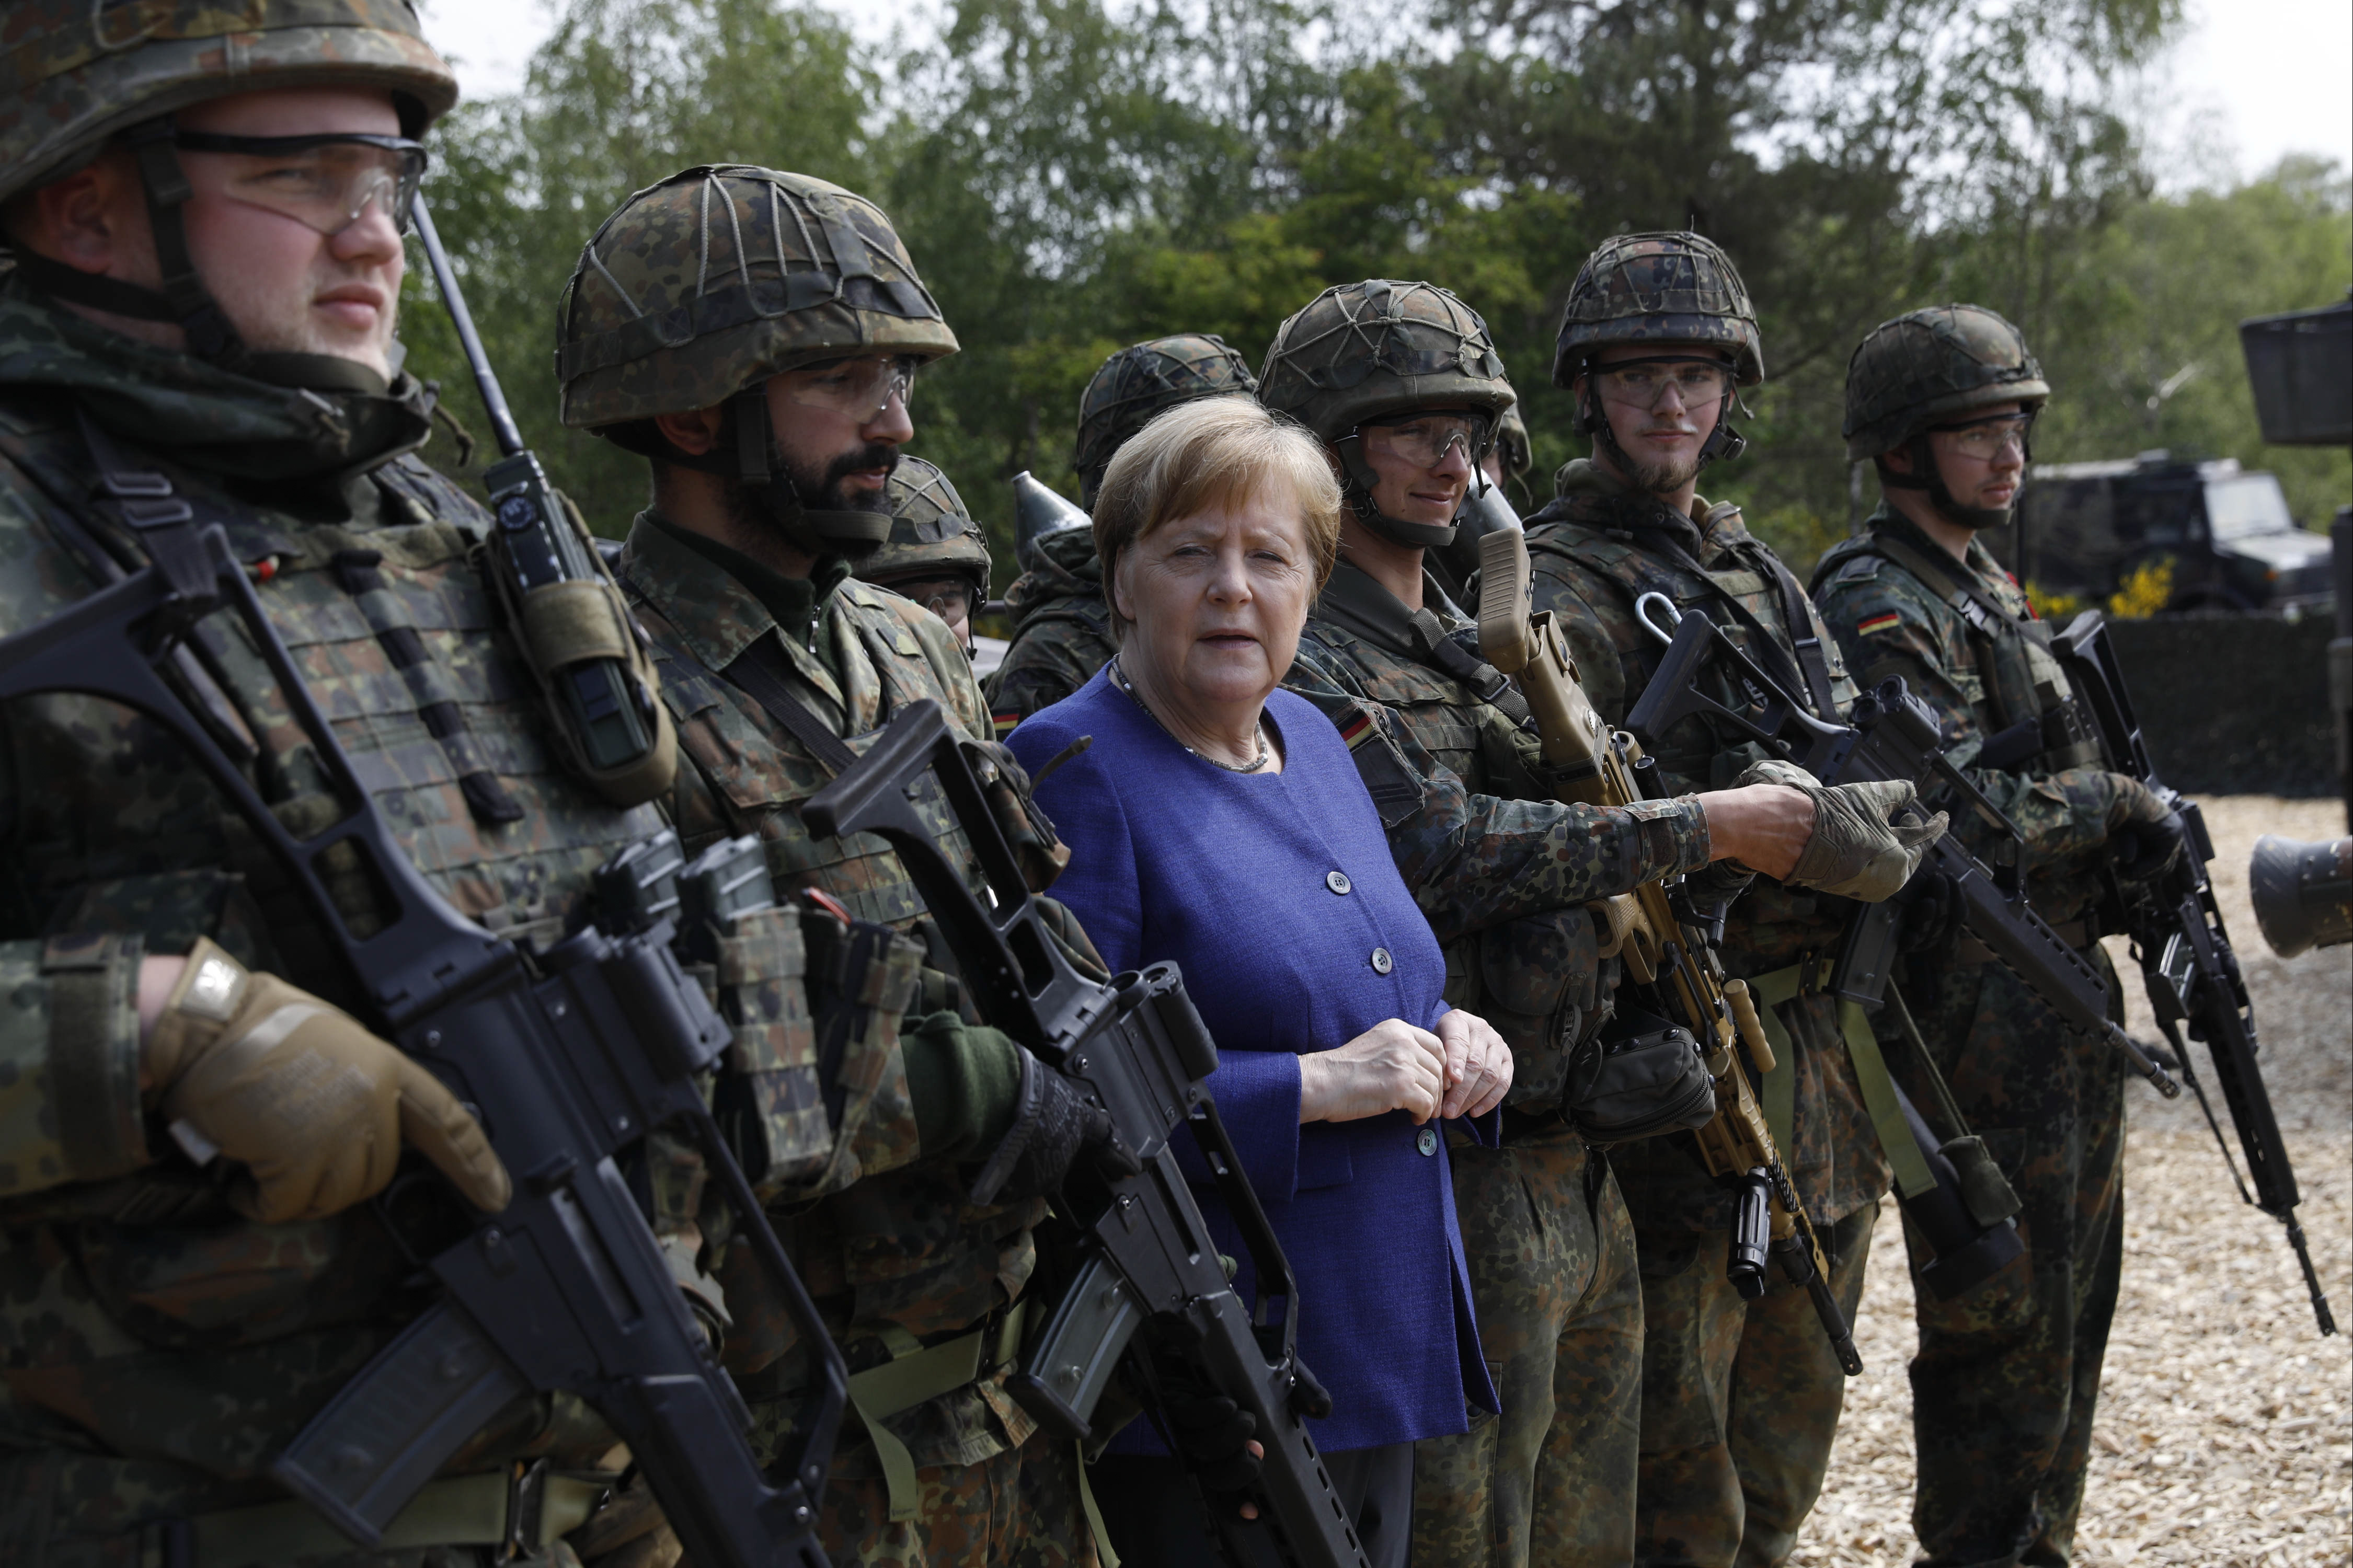 MUNSTER, GERMANY - MAY 20: German Chancellor Angela Merkel poses with members of the Bundeswehr Panzerlehrbrigade 9 (9th Armoured Demonstration Brigade) during a presentation of capabilities by the unit on May 20, 2019 in Munster, Germany.